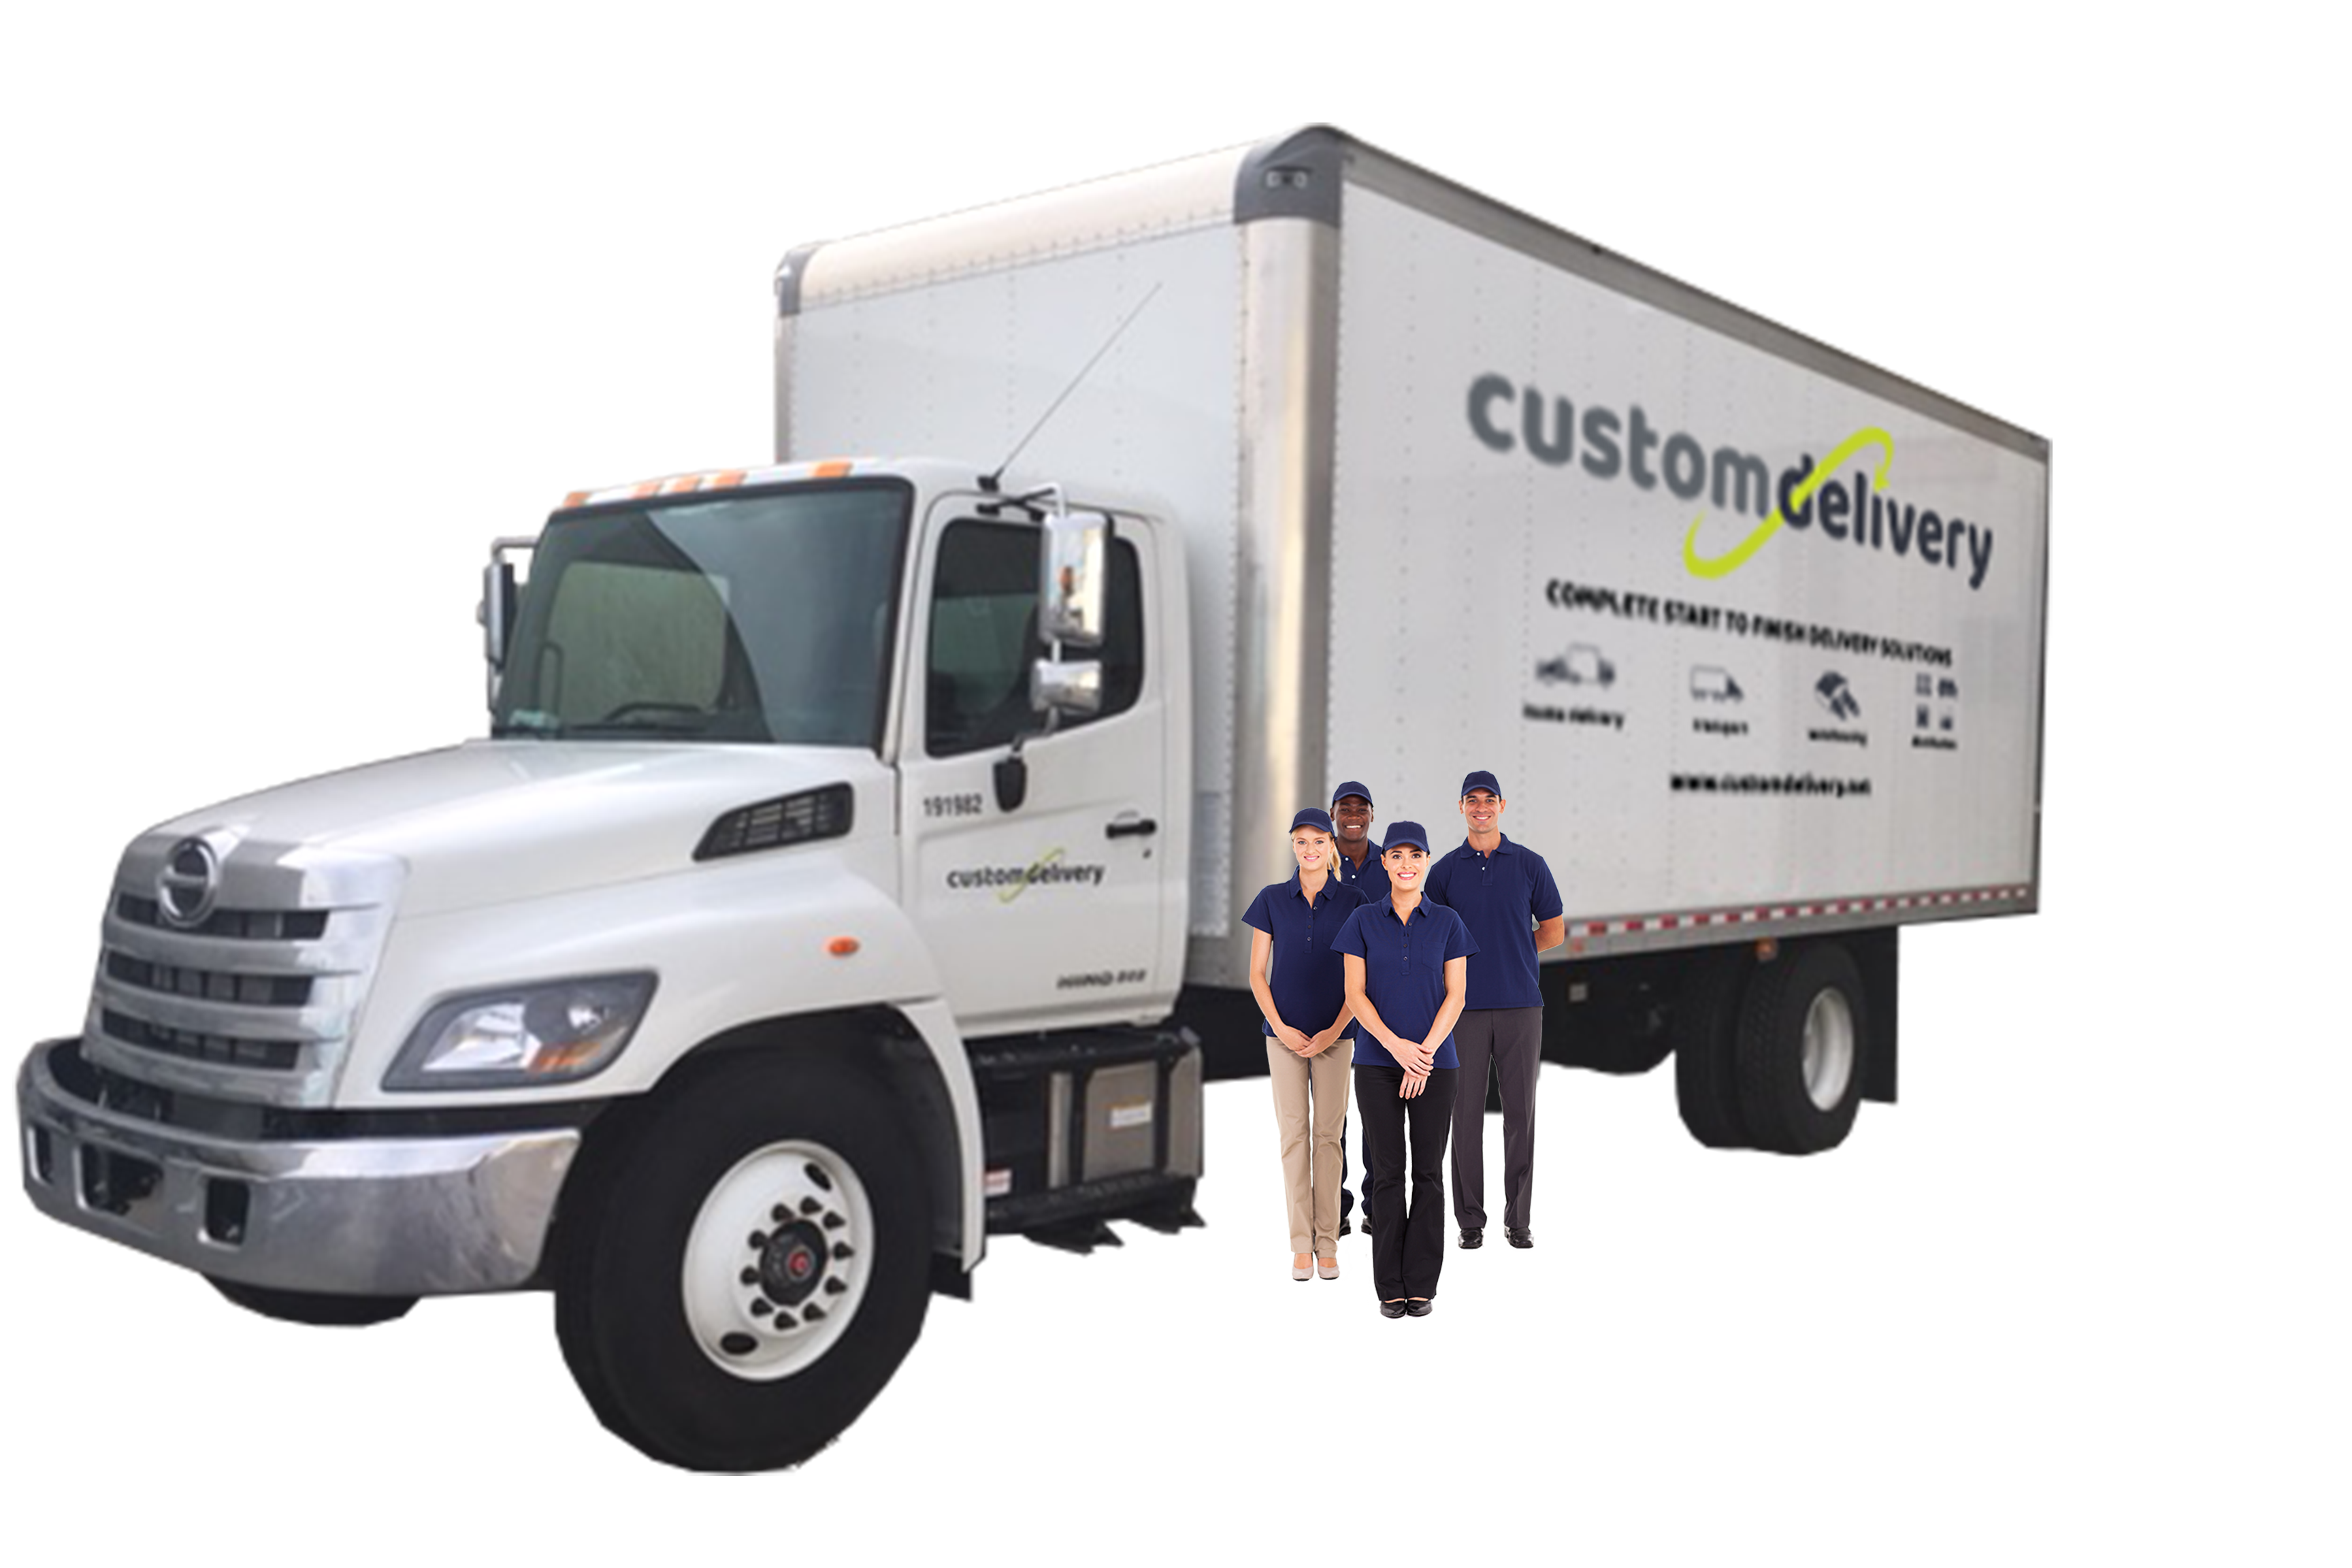 https://customhomedelivery.com/wp-content/uploads/2018/04/CDS-truck-and-team-1.png